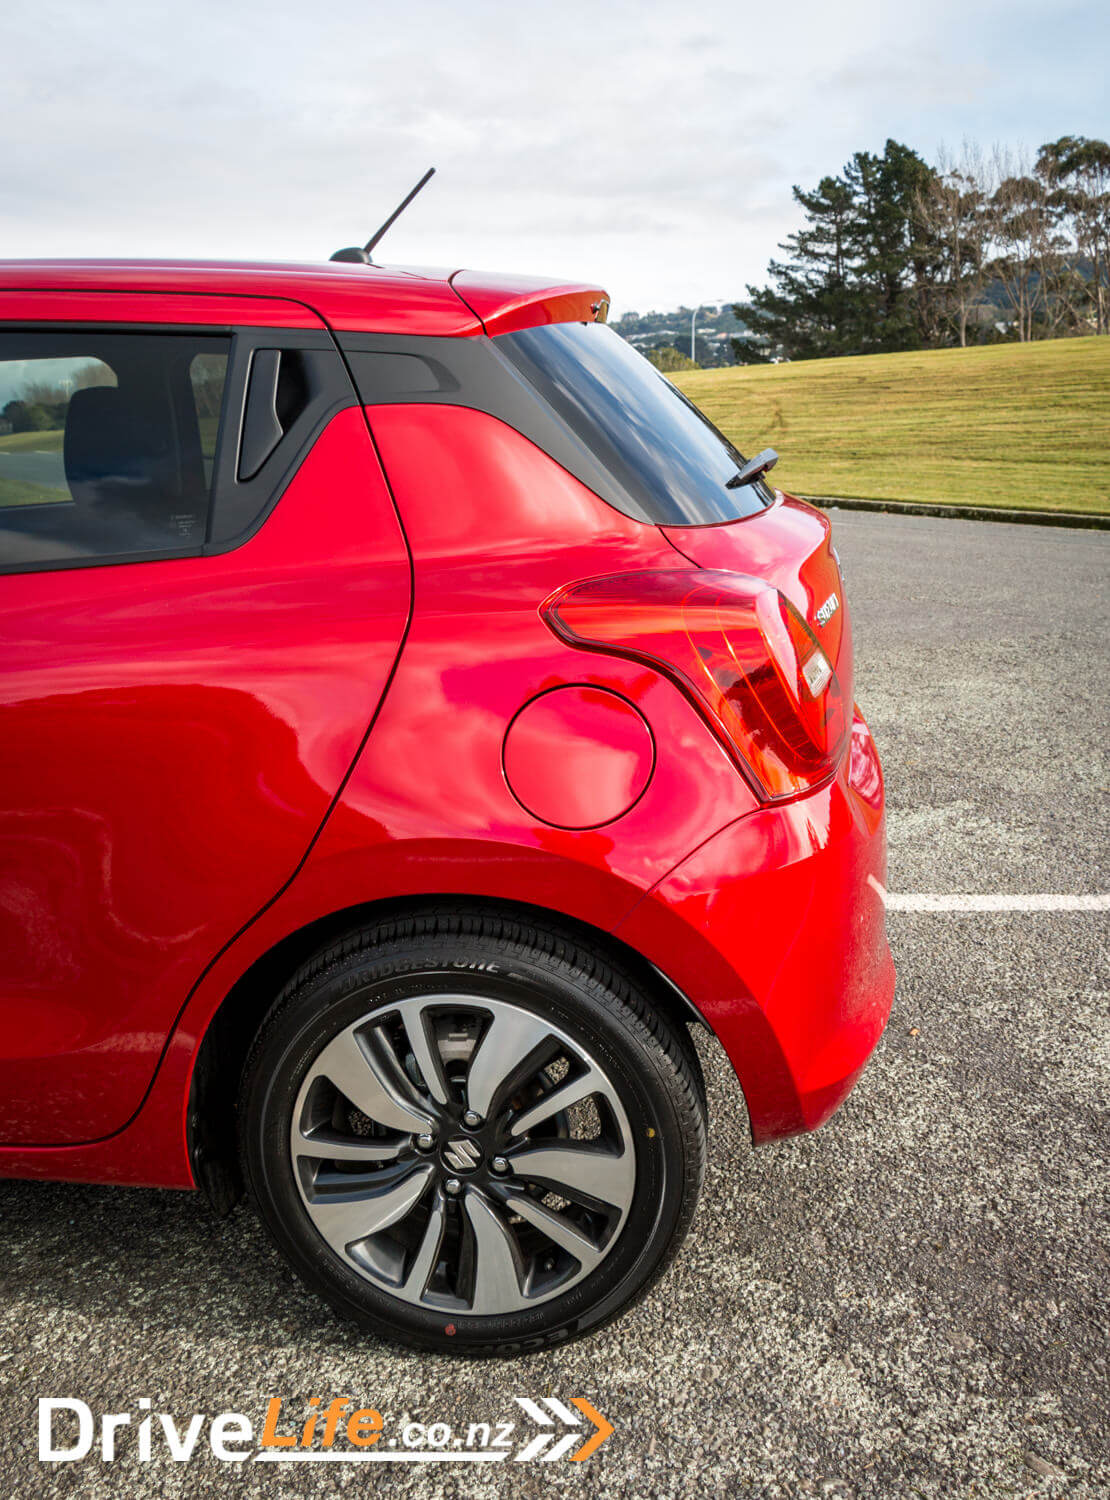 2017 Suzuki Swift Rs Car Review Swift By Name